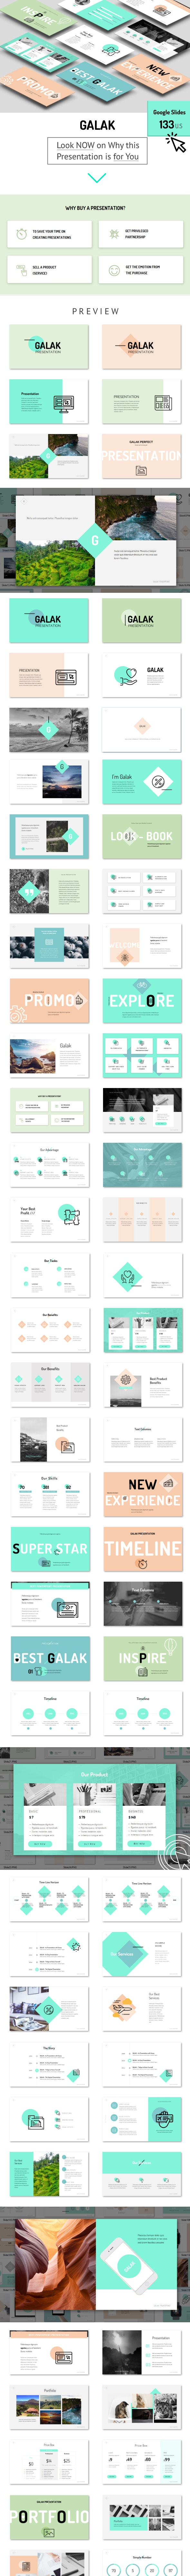 GALAK - Google Slides Presentation Template - Google Slides Presentation Templates